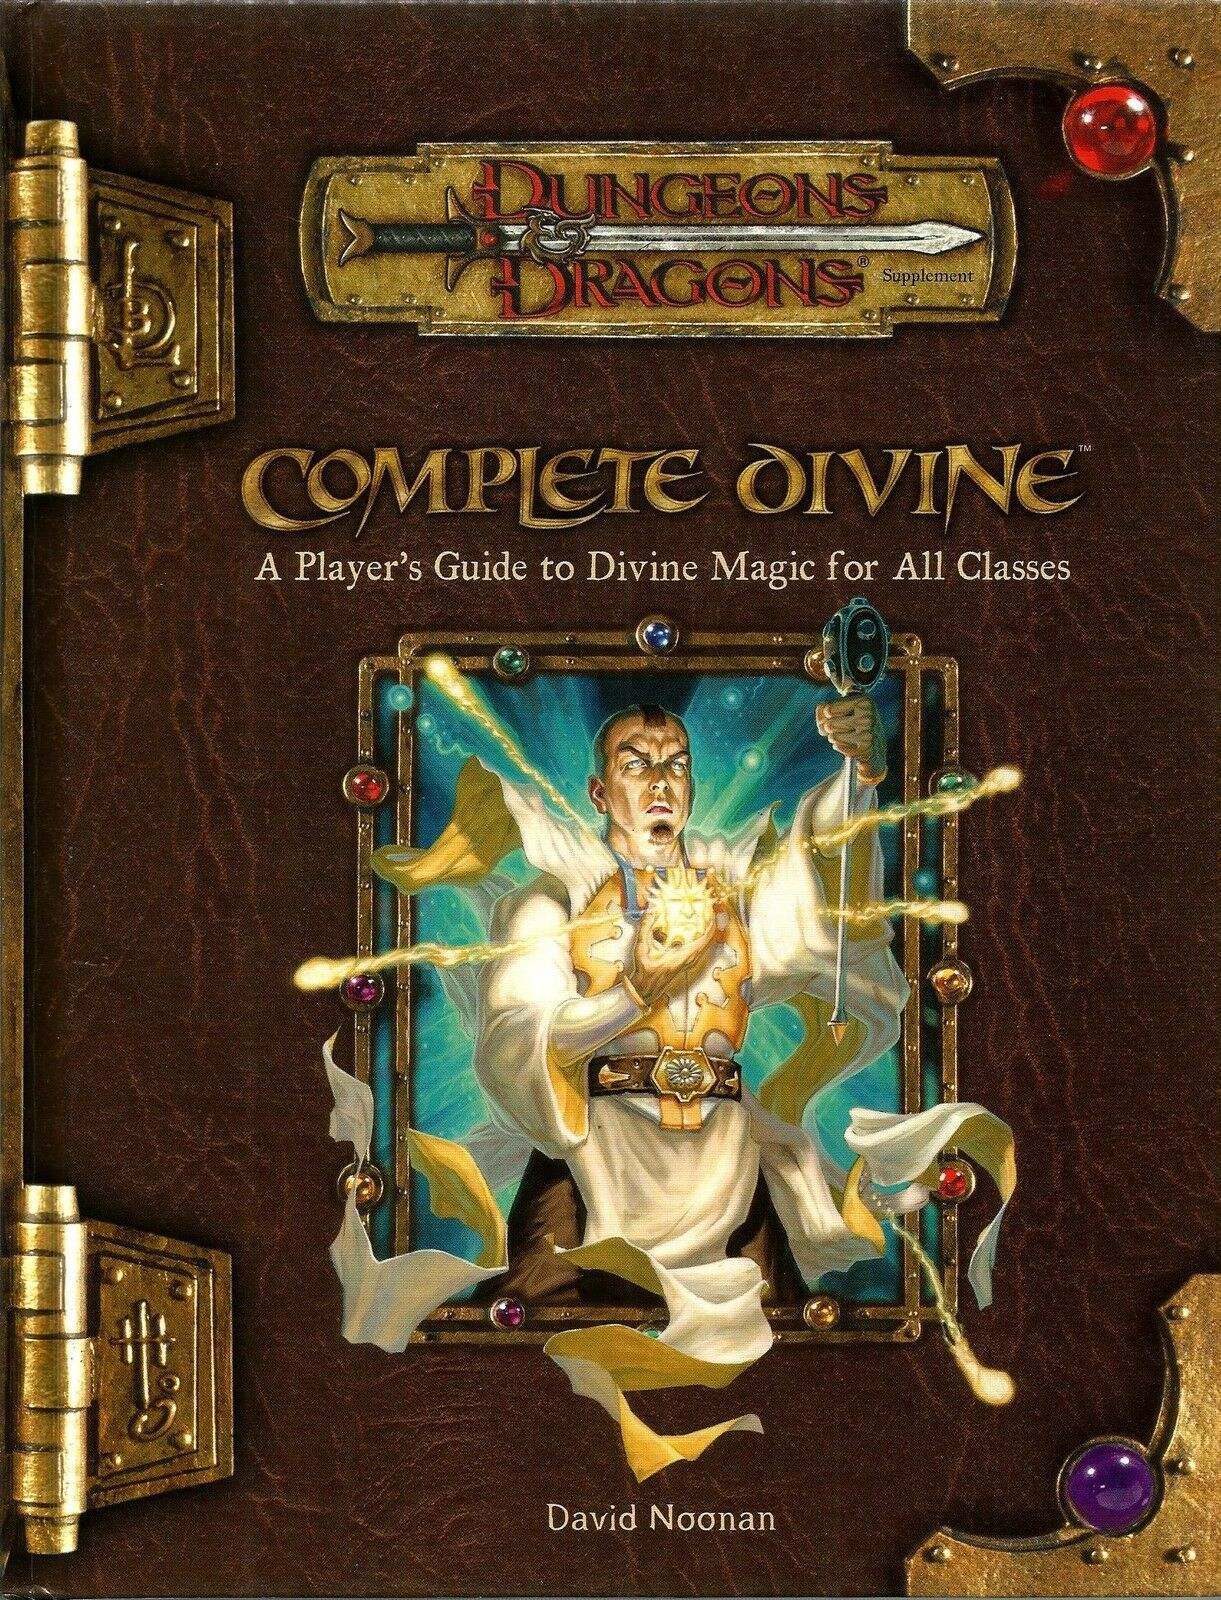 D&D - Dungeons & Dragons Ed 3.5  Complete Divine Perfetto Sacerdote - Eng USATO